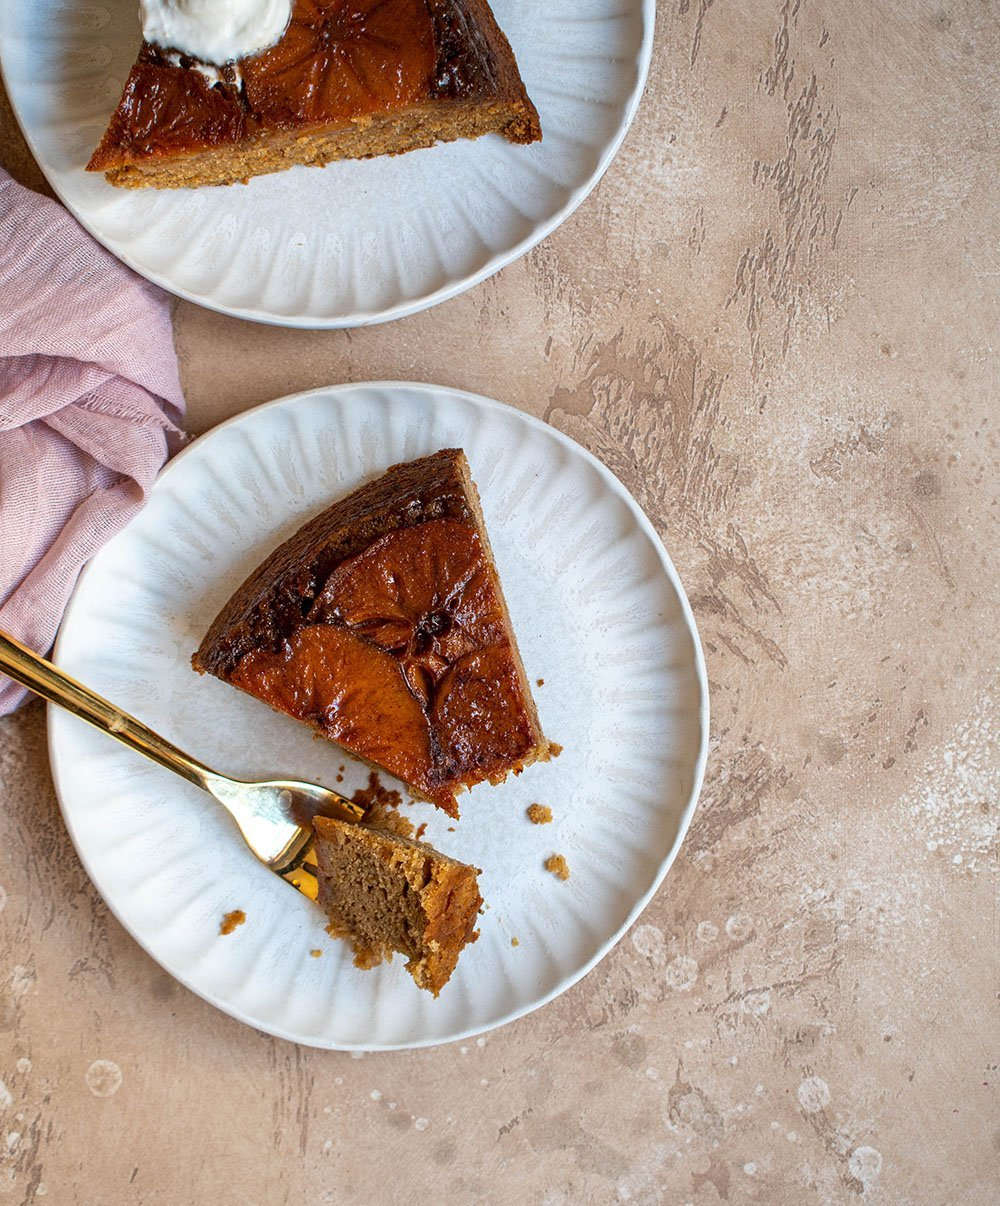 upside down persimmon cake